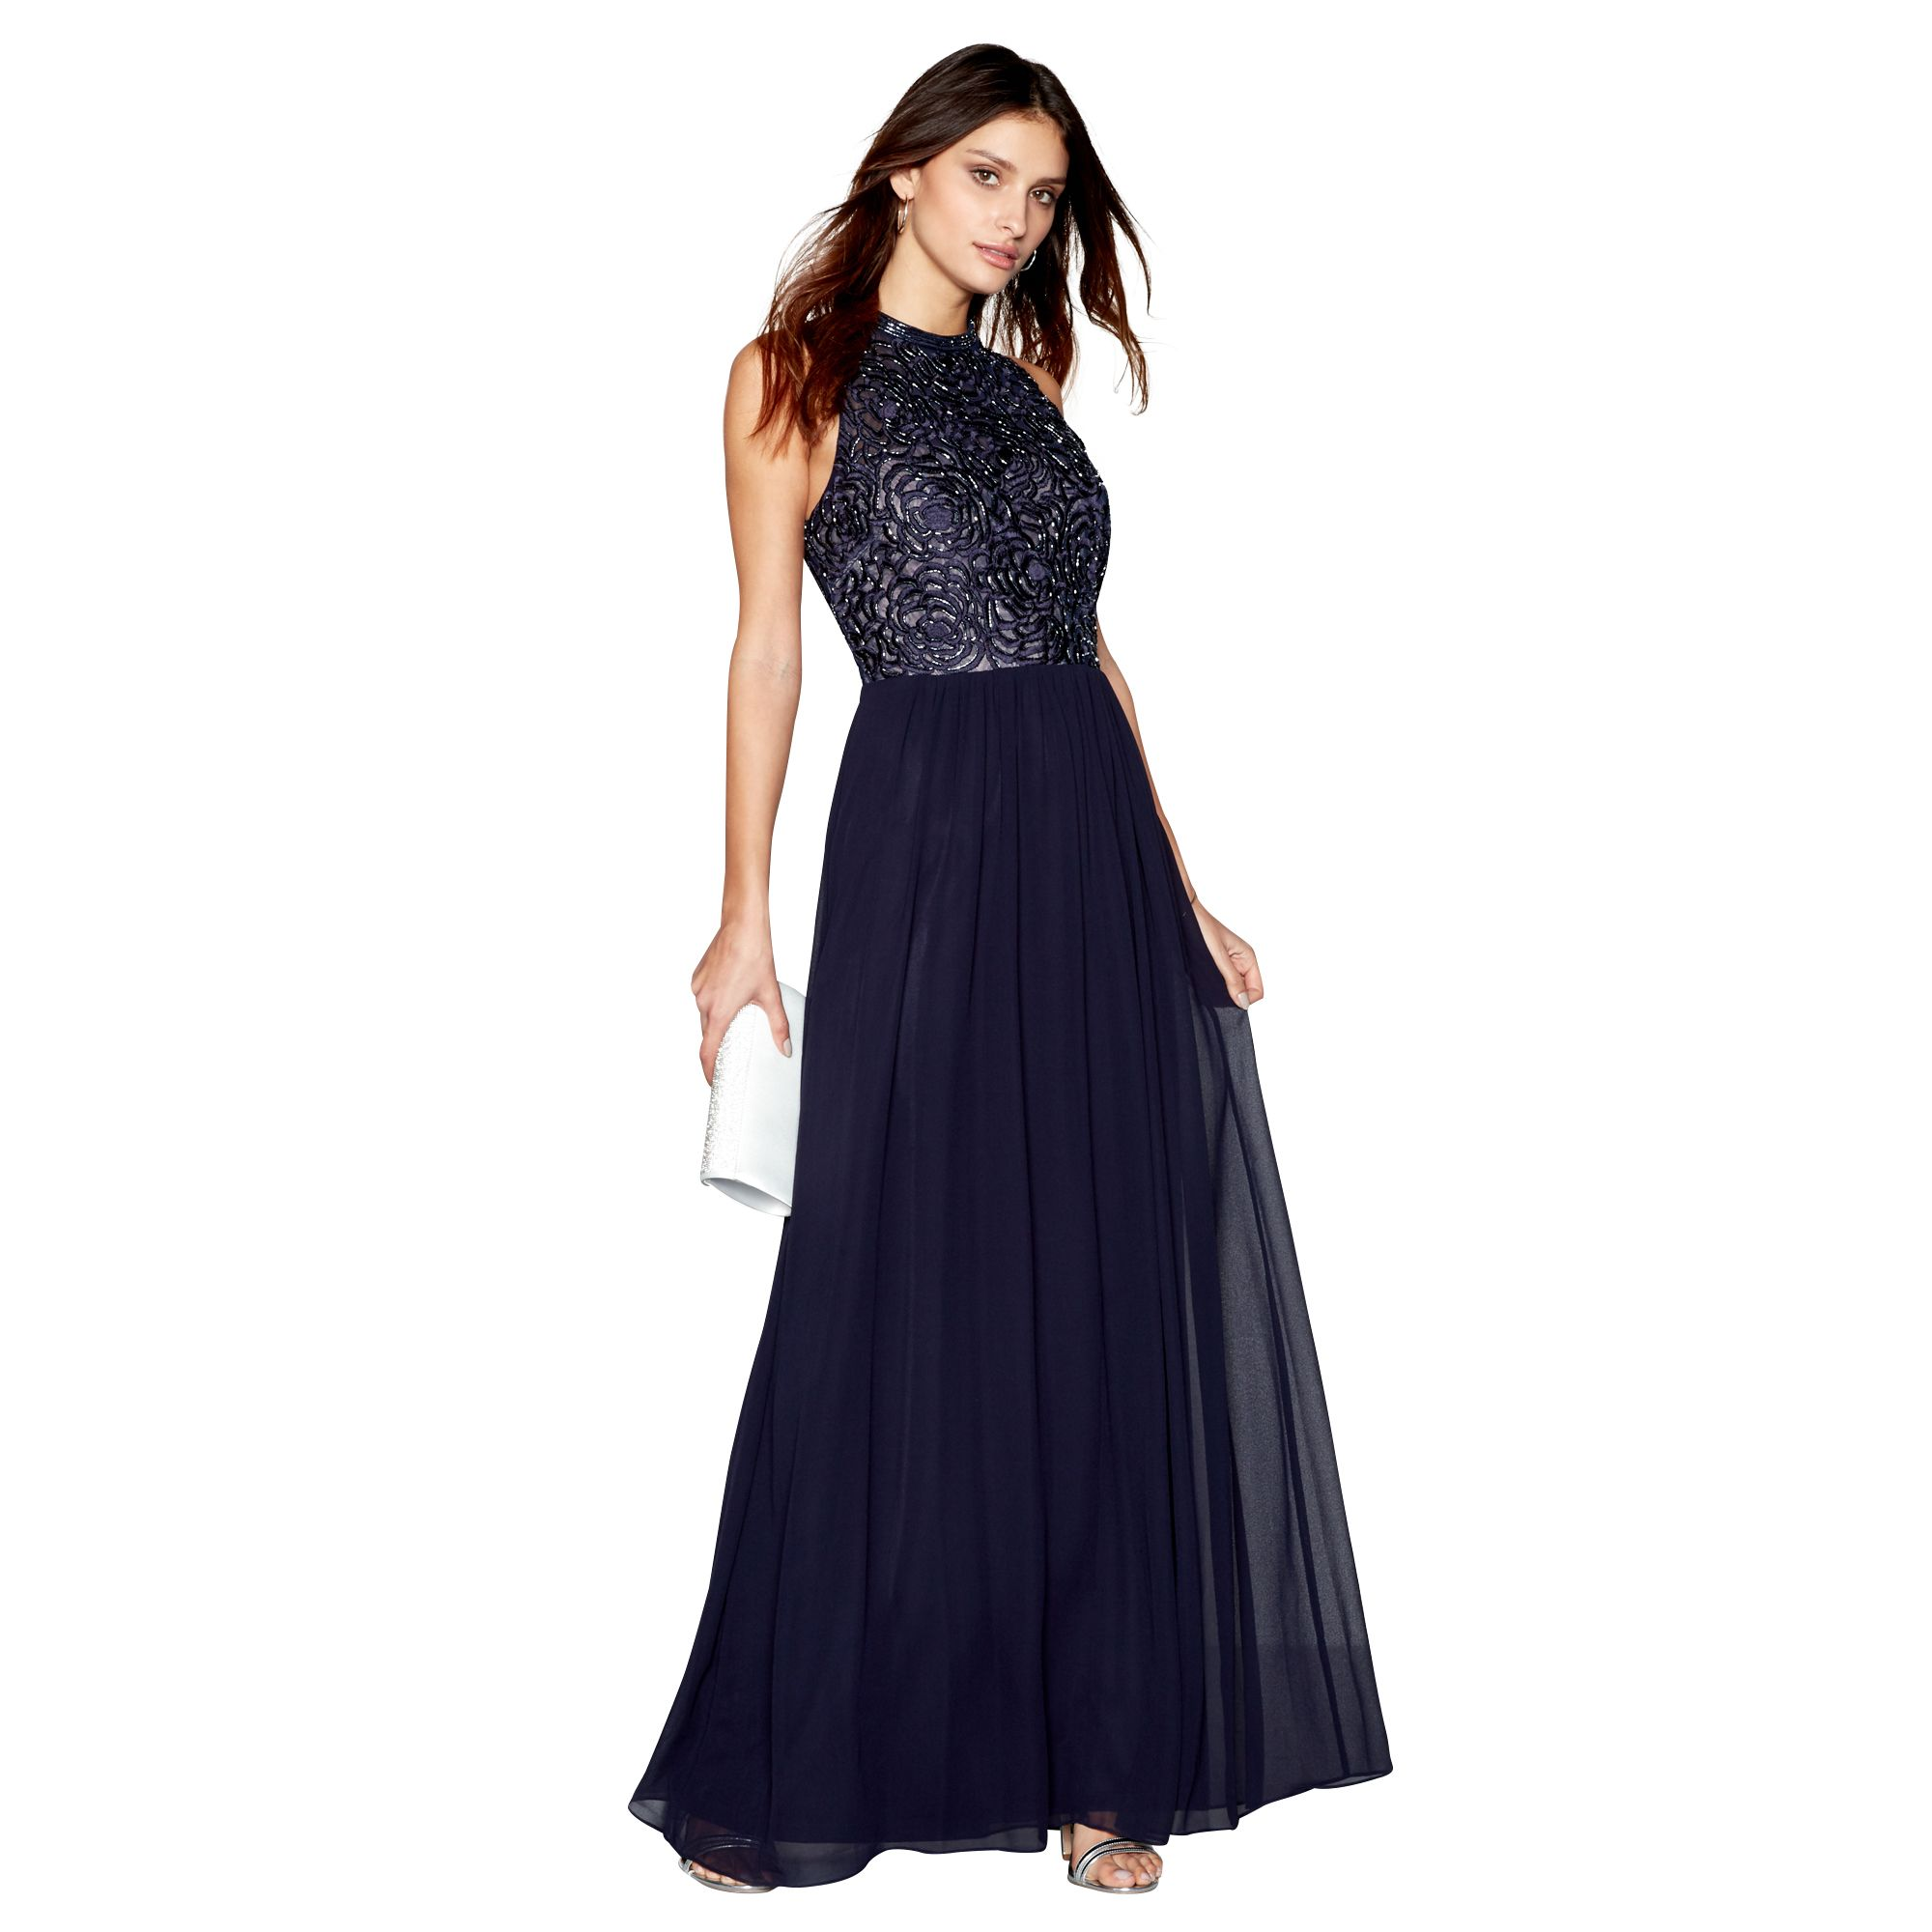 Debenhams formal dresses image collections dresses design ideas jenny packham bridesmaids dresses choice image braidsmaid dress debenhams formal dresses image collections dresses design ideas ombrellifo Image collections